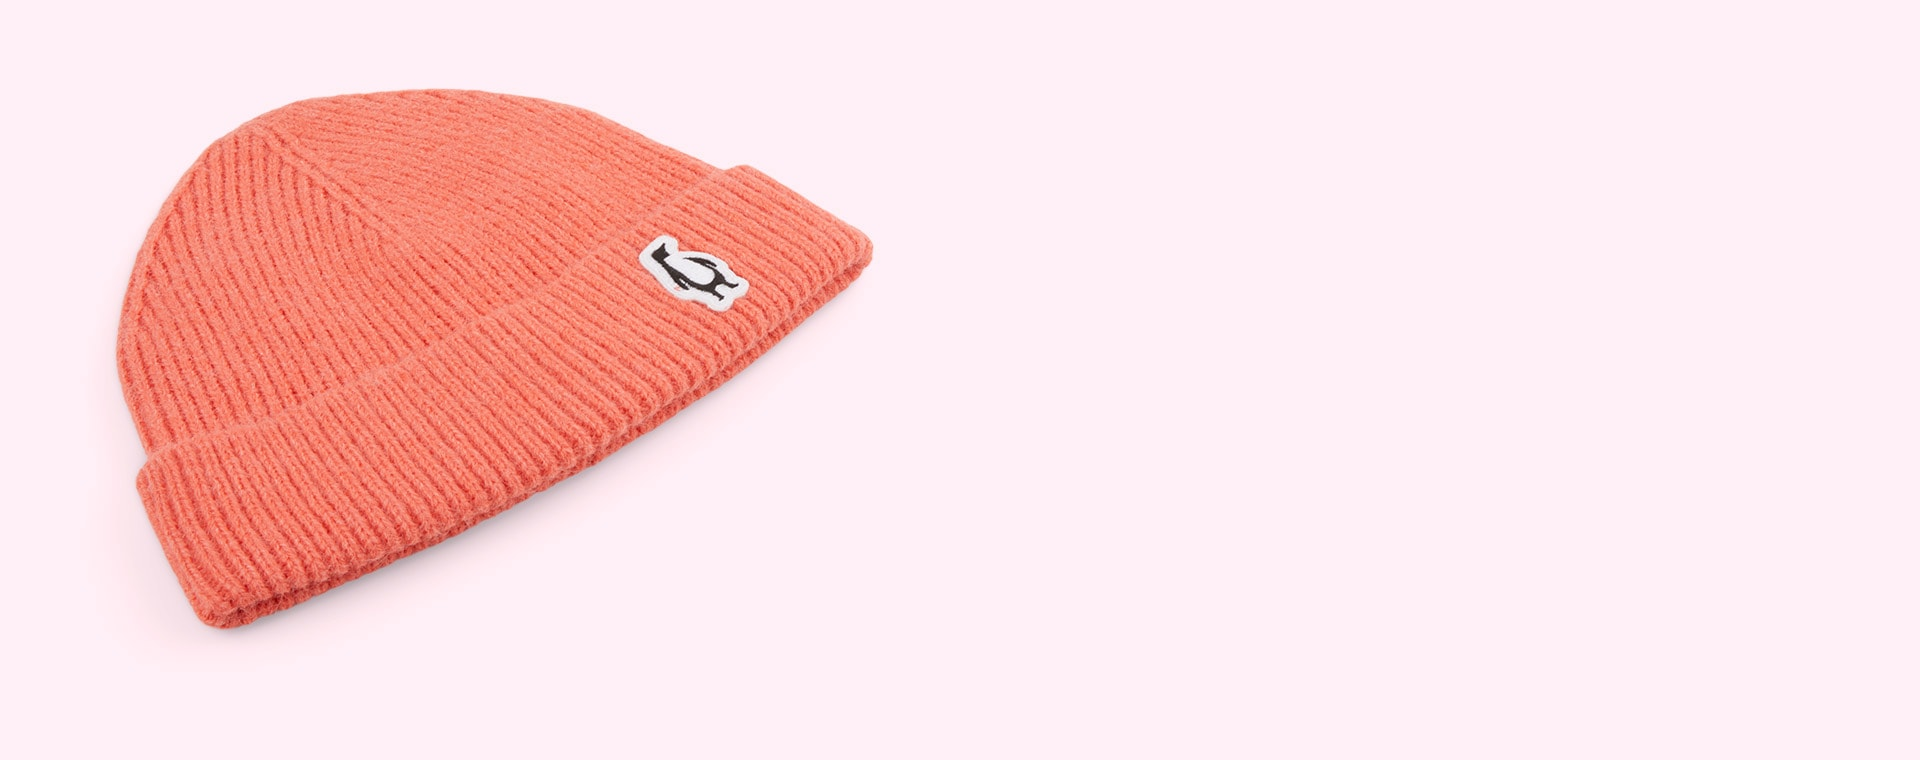 Persimmon Pink GOSOAKY Red Dragon Penguin Badge Hat